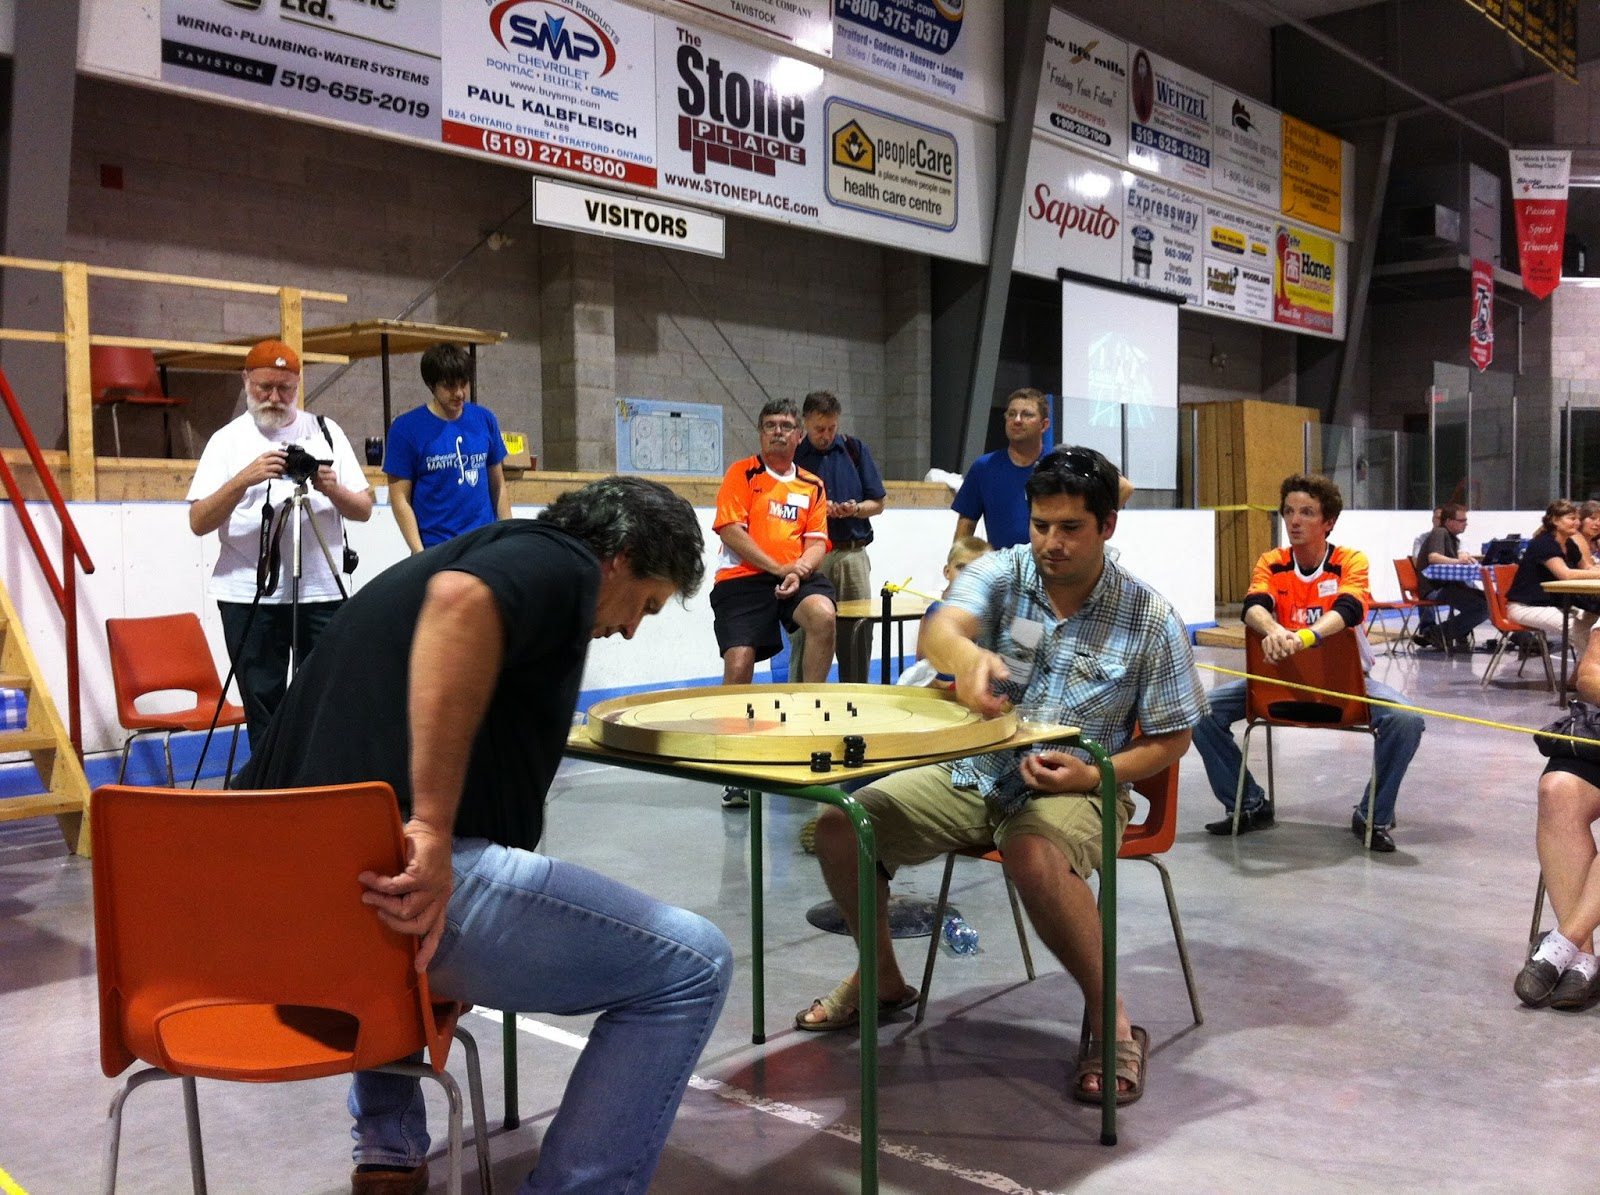 Jon Conrad adjusts his chair while Raymond Haymes collects his discs before the Championship match of the 2013 World Crokinole Championships